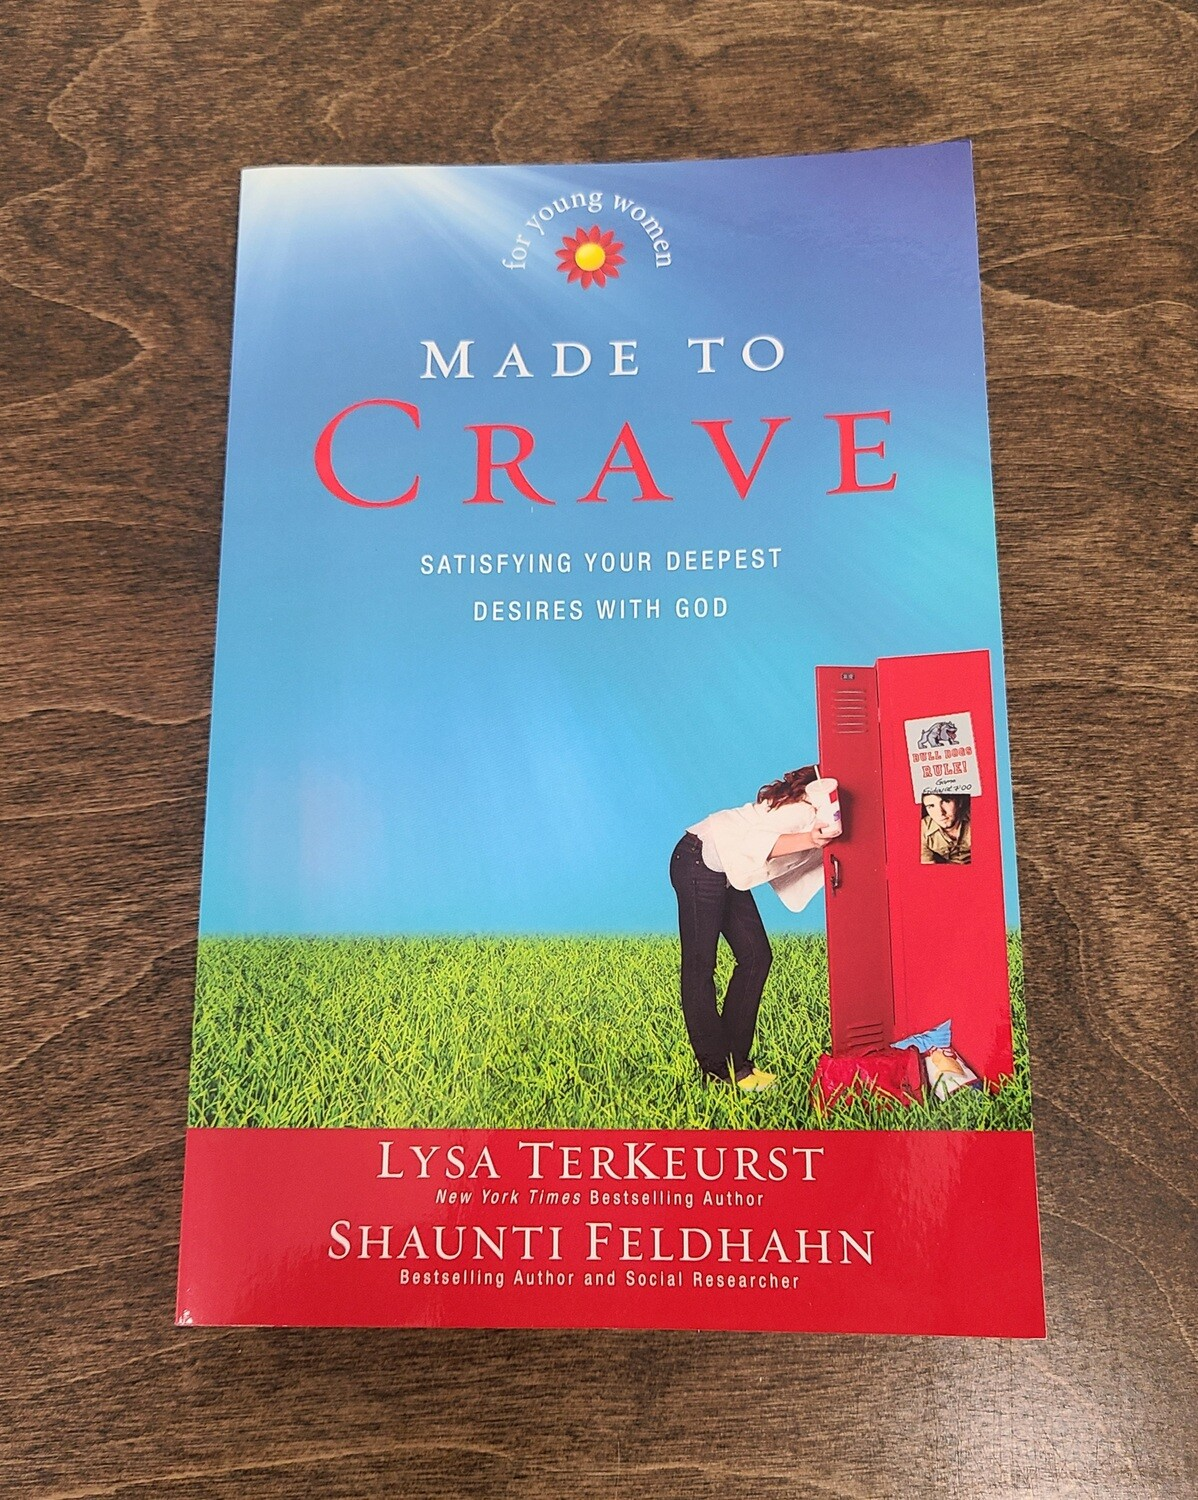 Made to Crave by Lysa TerKeurst and Shaunti Feldhahn